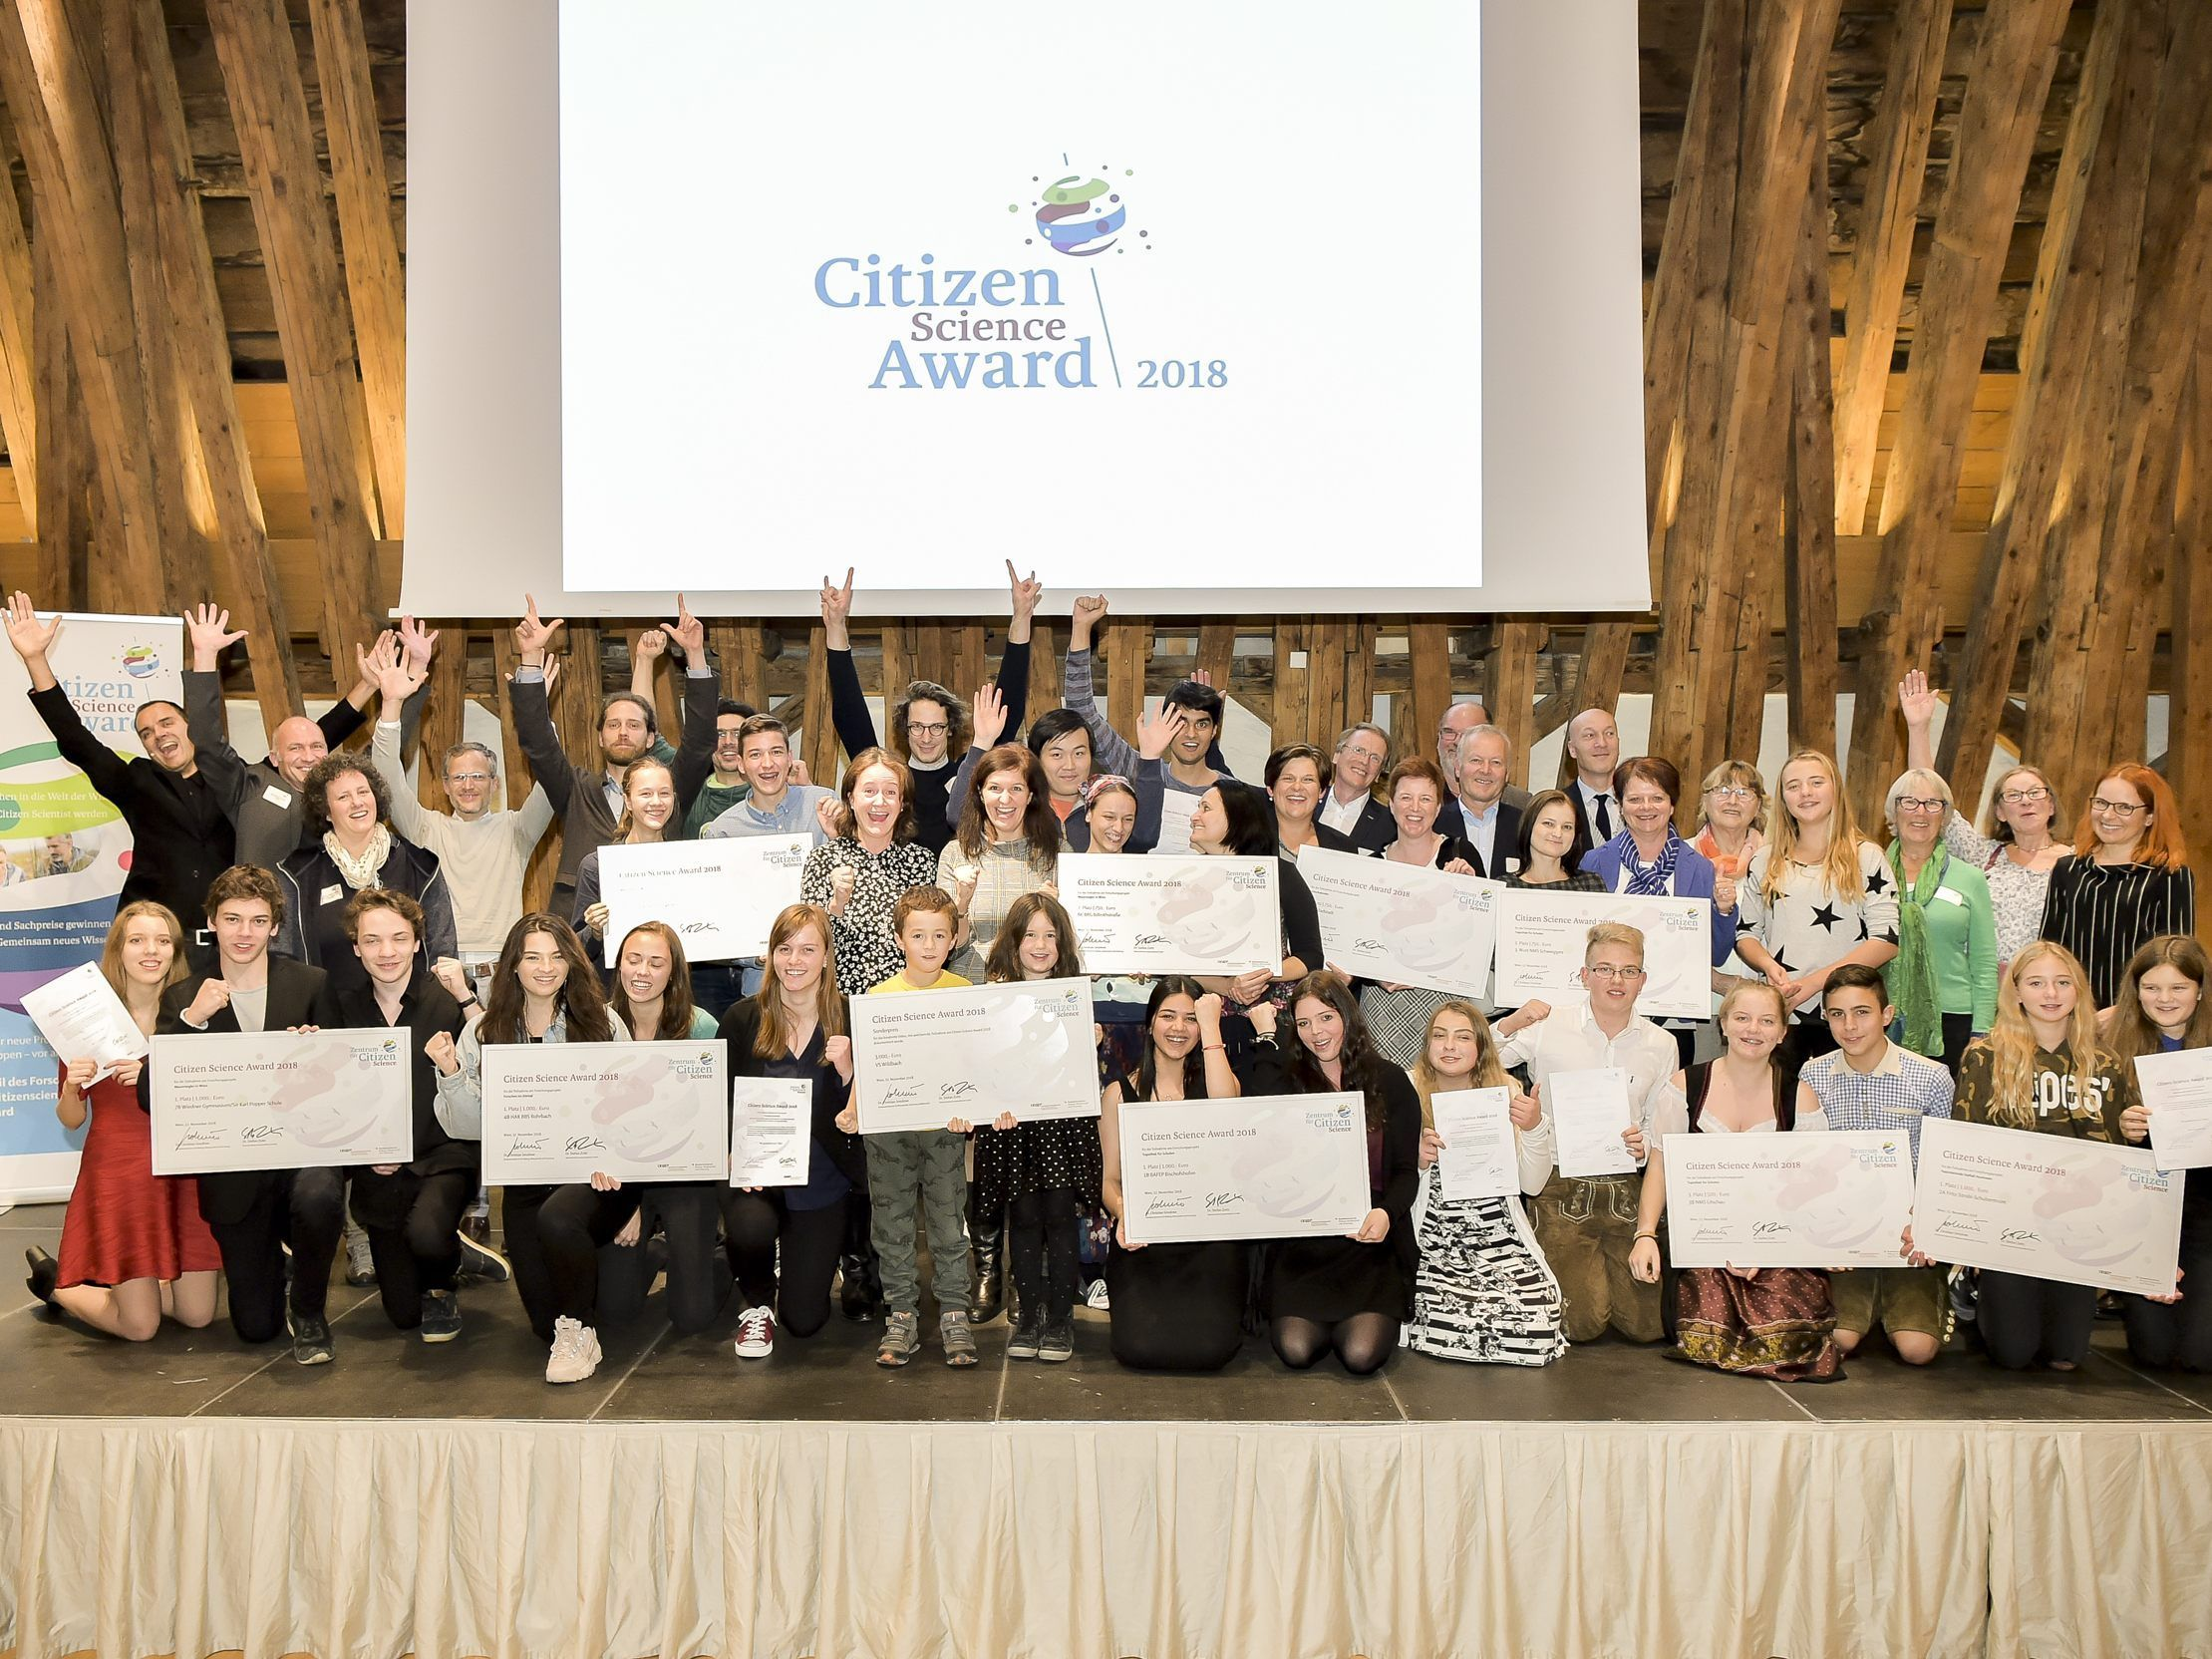 Die Gewinner des Citizen Science Award 2018.